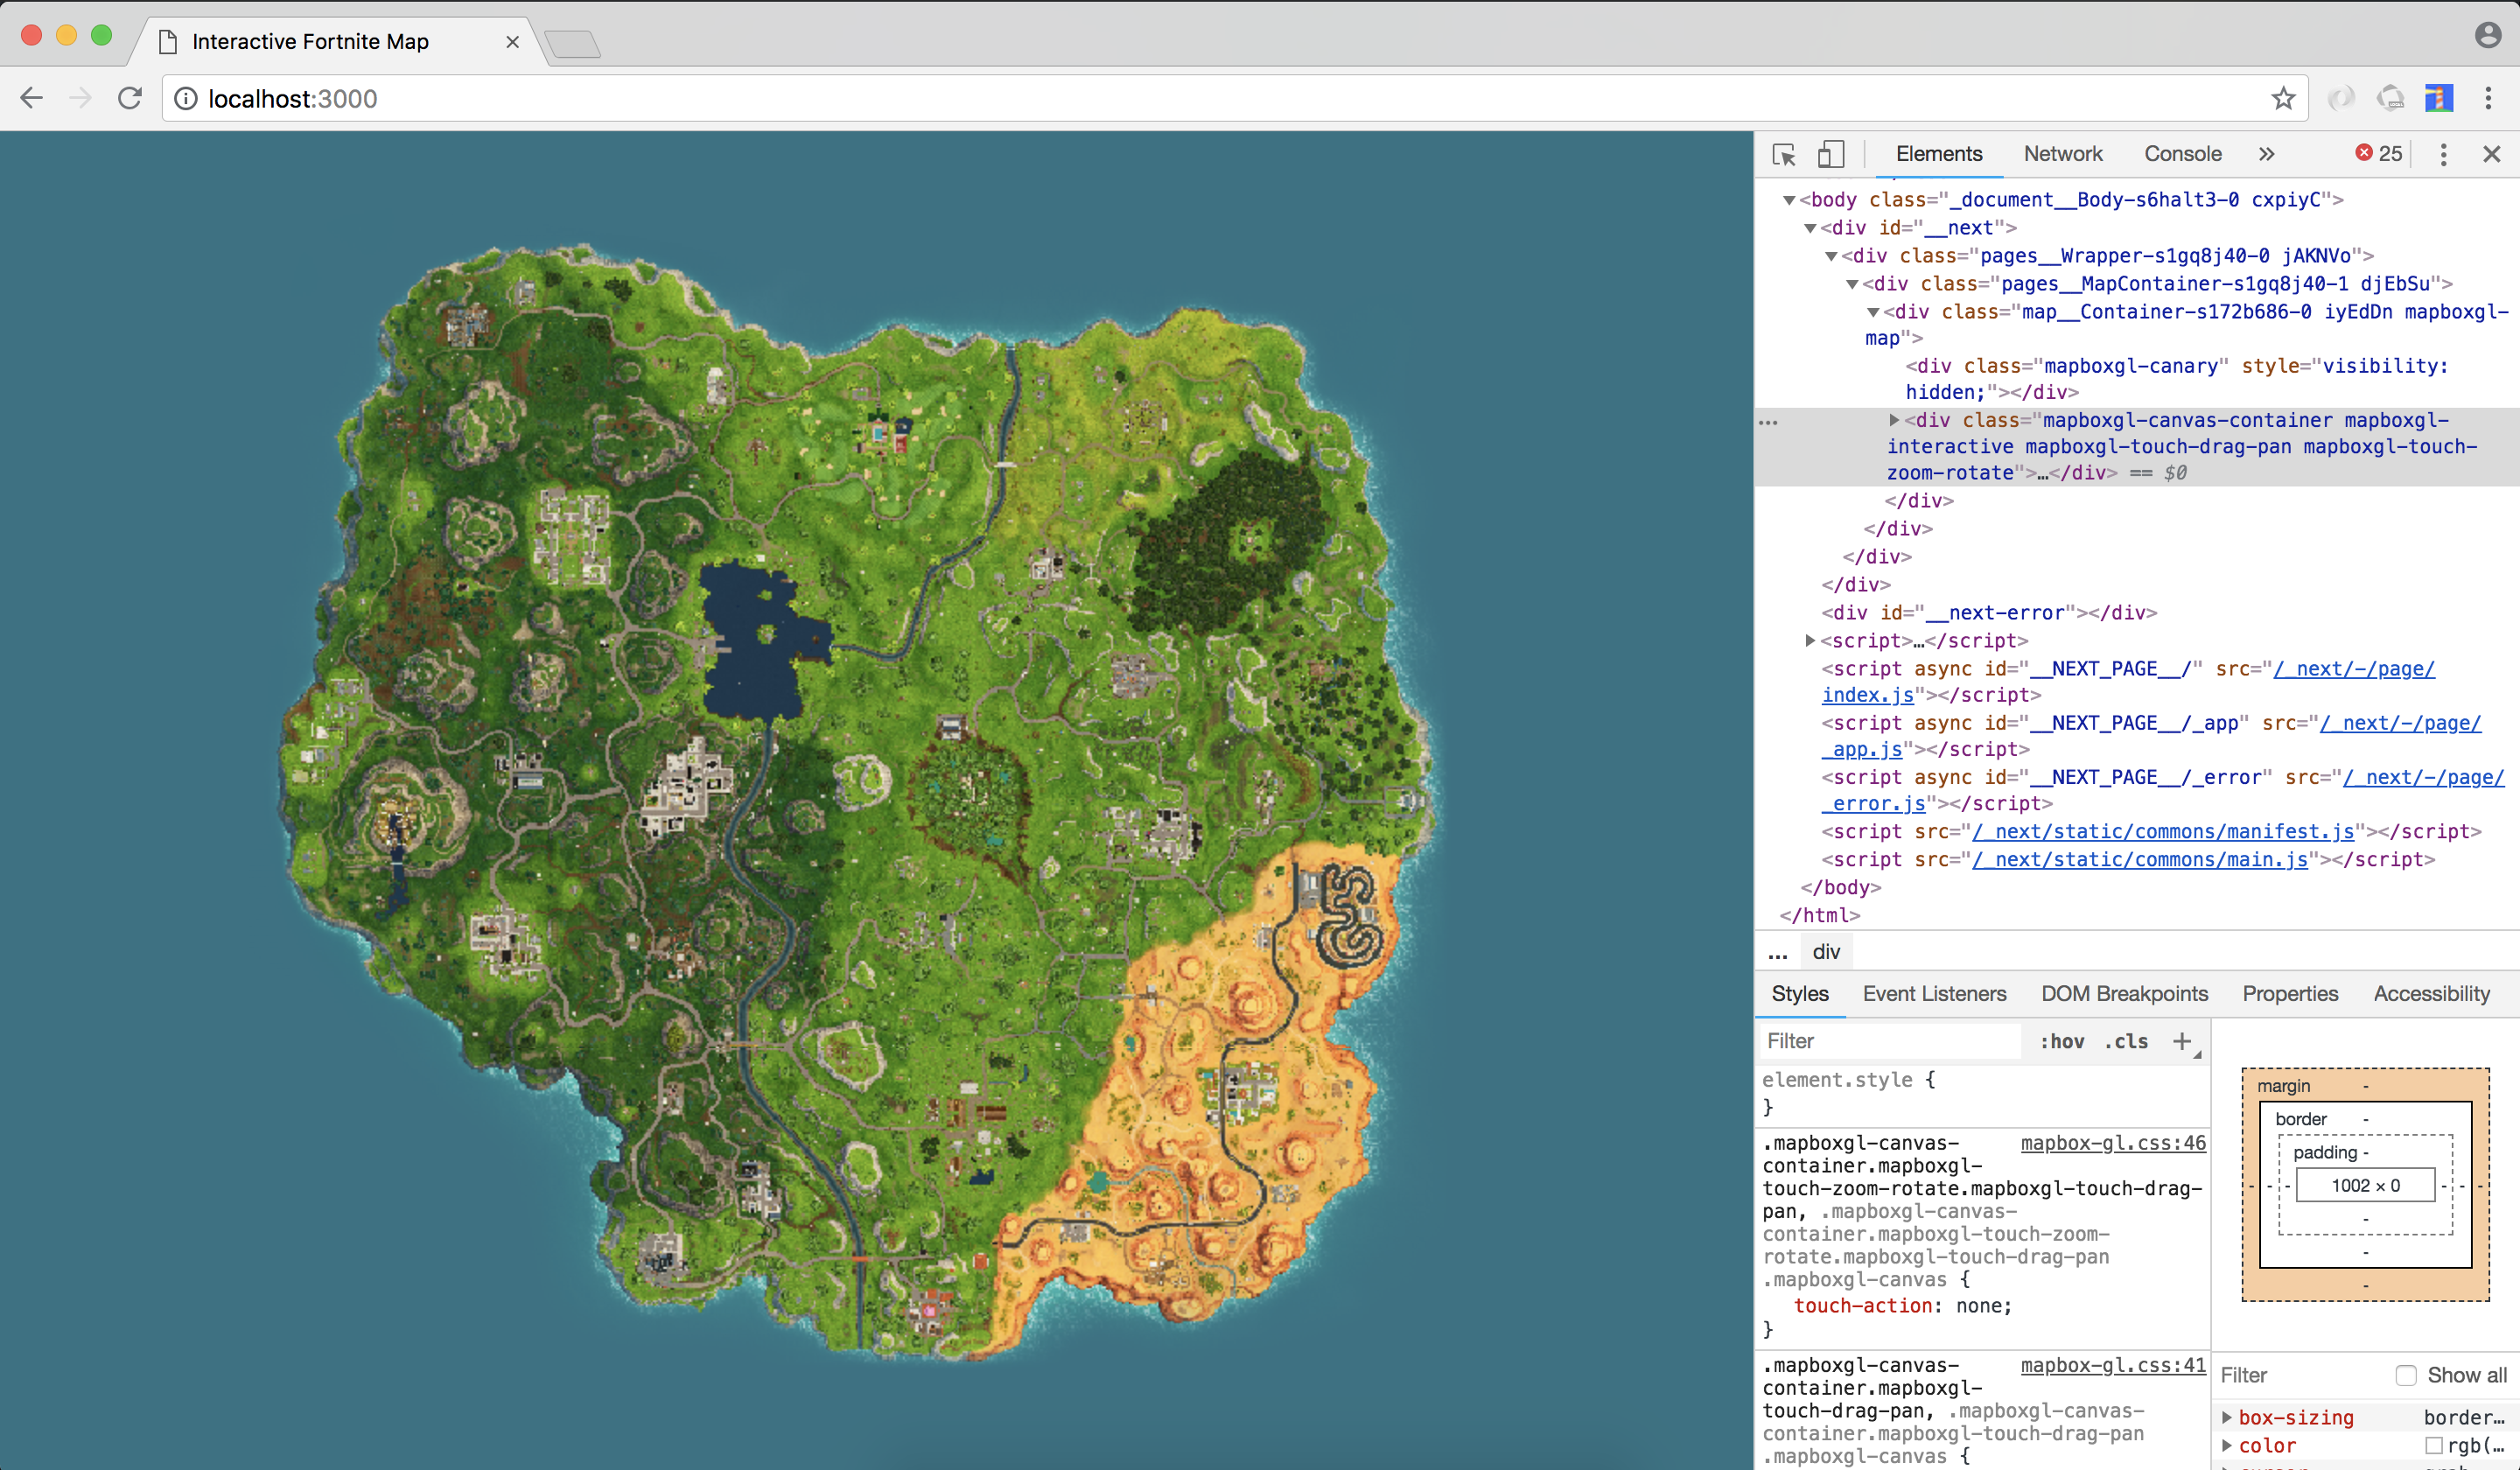 Building an Interactive Fortnite Map - Timothy Krechel - Medium